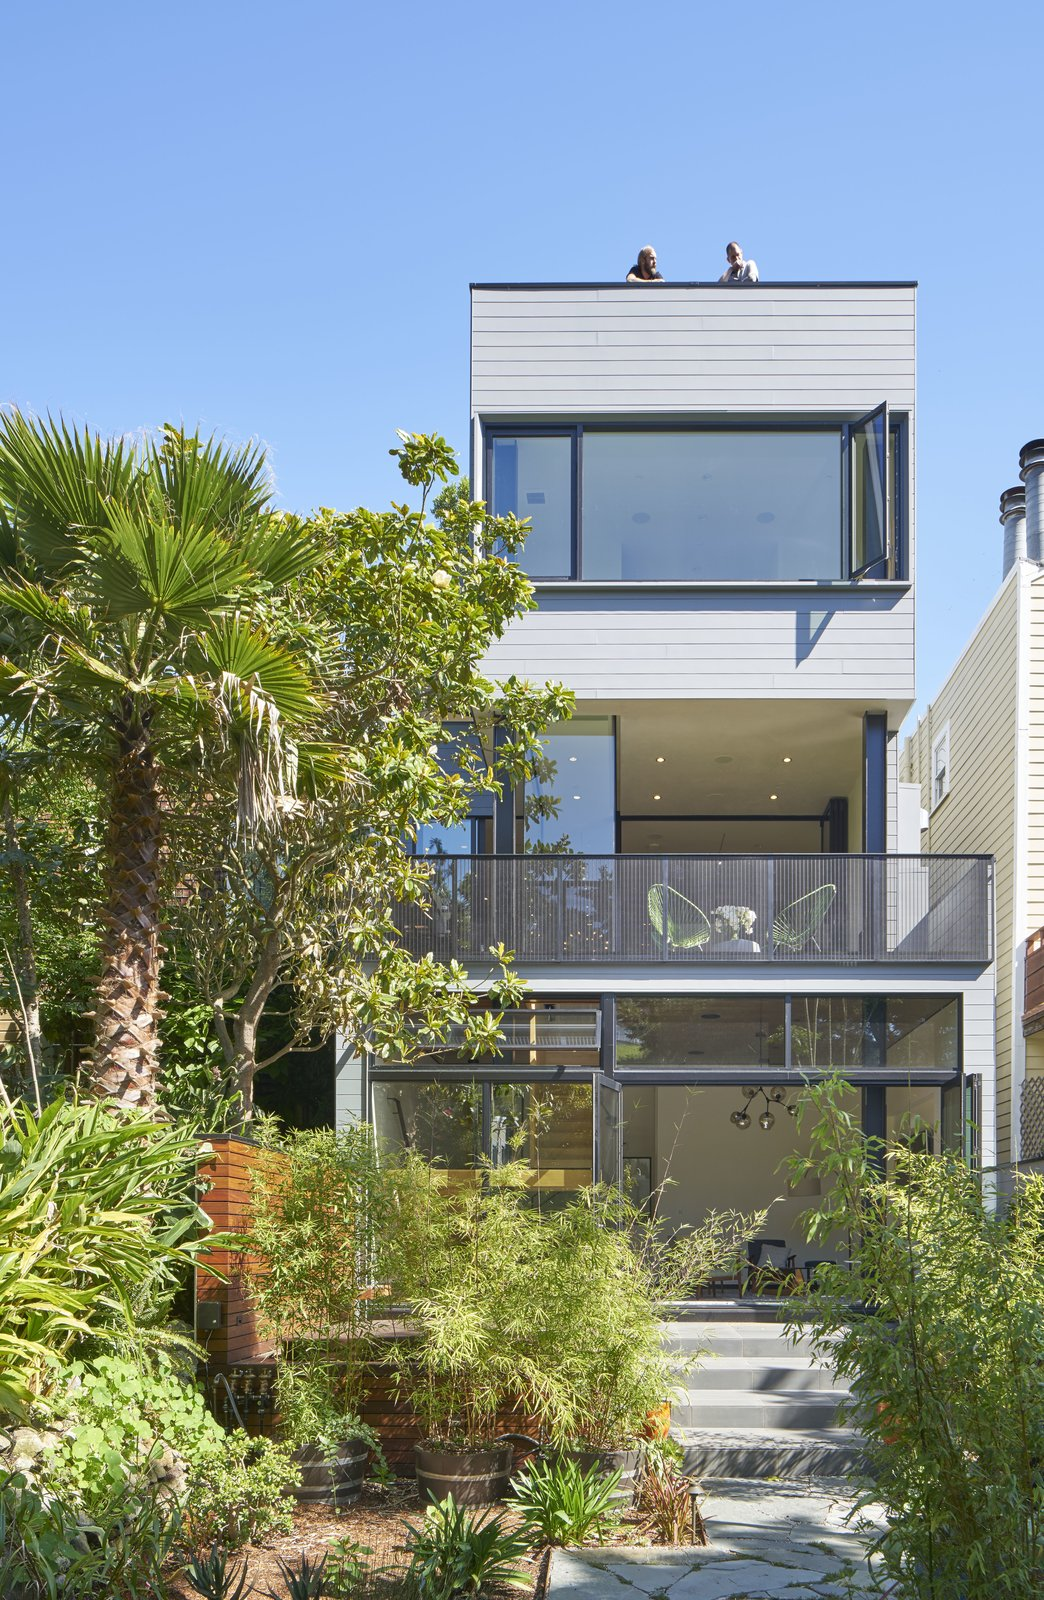 29th Street Residence in San Francisco, California Tagged: Outdoor, Hardscapes, Walkways, Gardens, Trees, Shrubs, Back Yard, Metal Fences, Wall, Garden, and Wire Fences, Wall.  29th Street Residence by Schwartz and Architecture